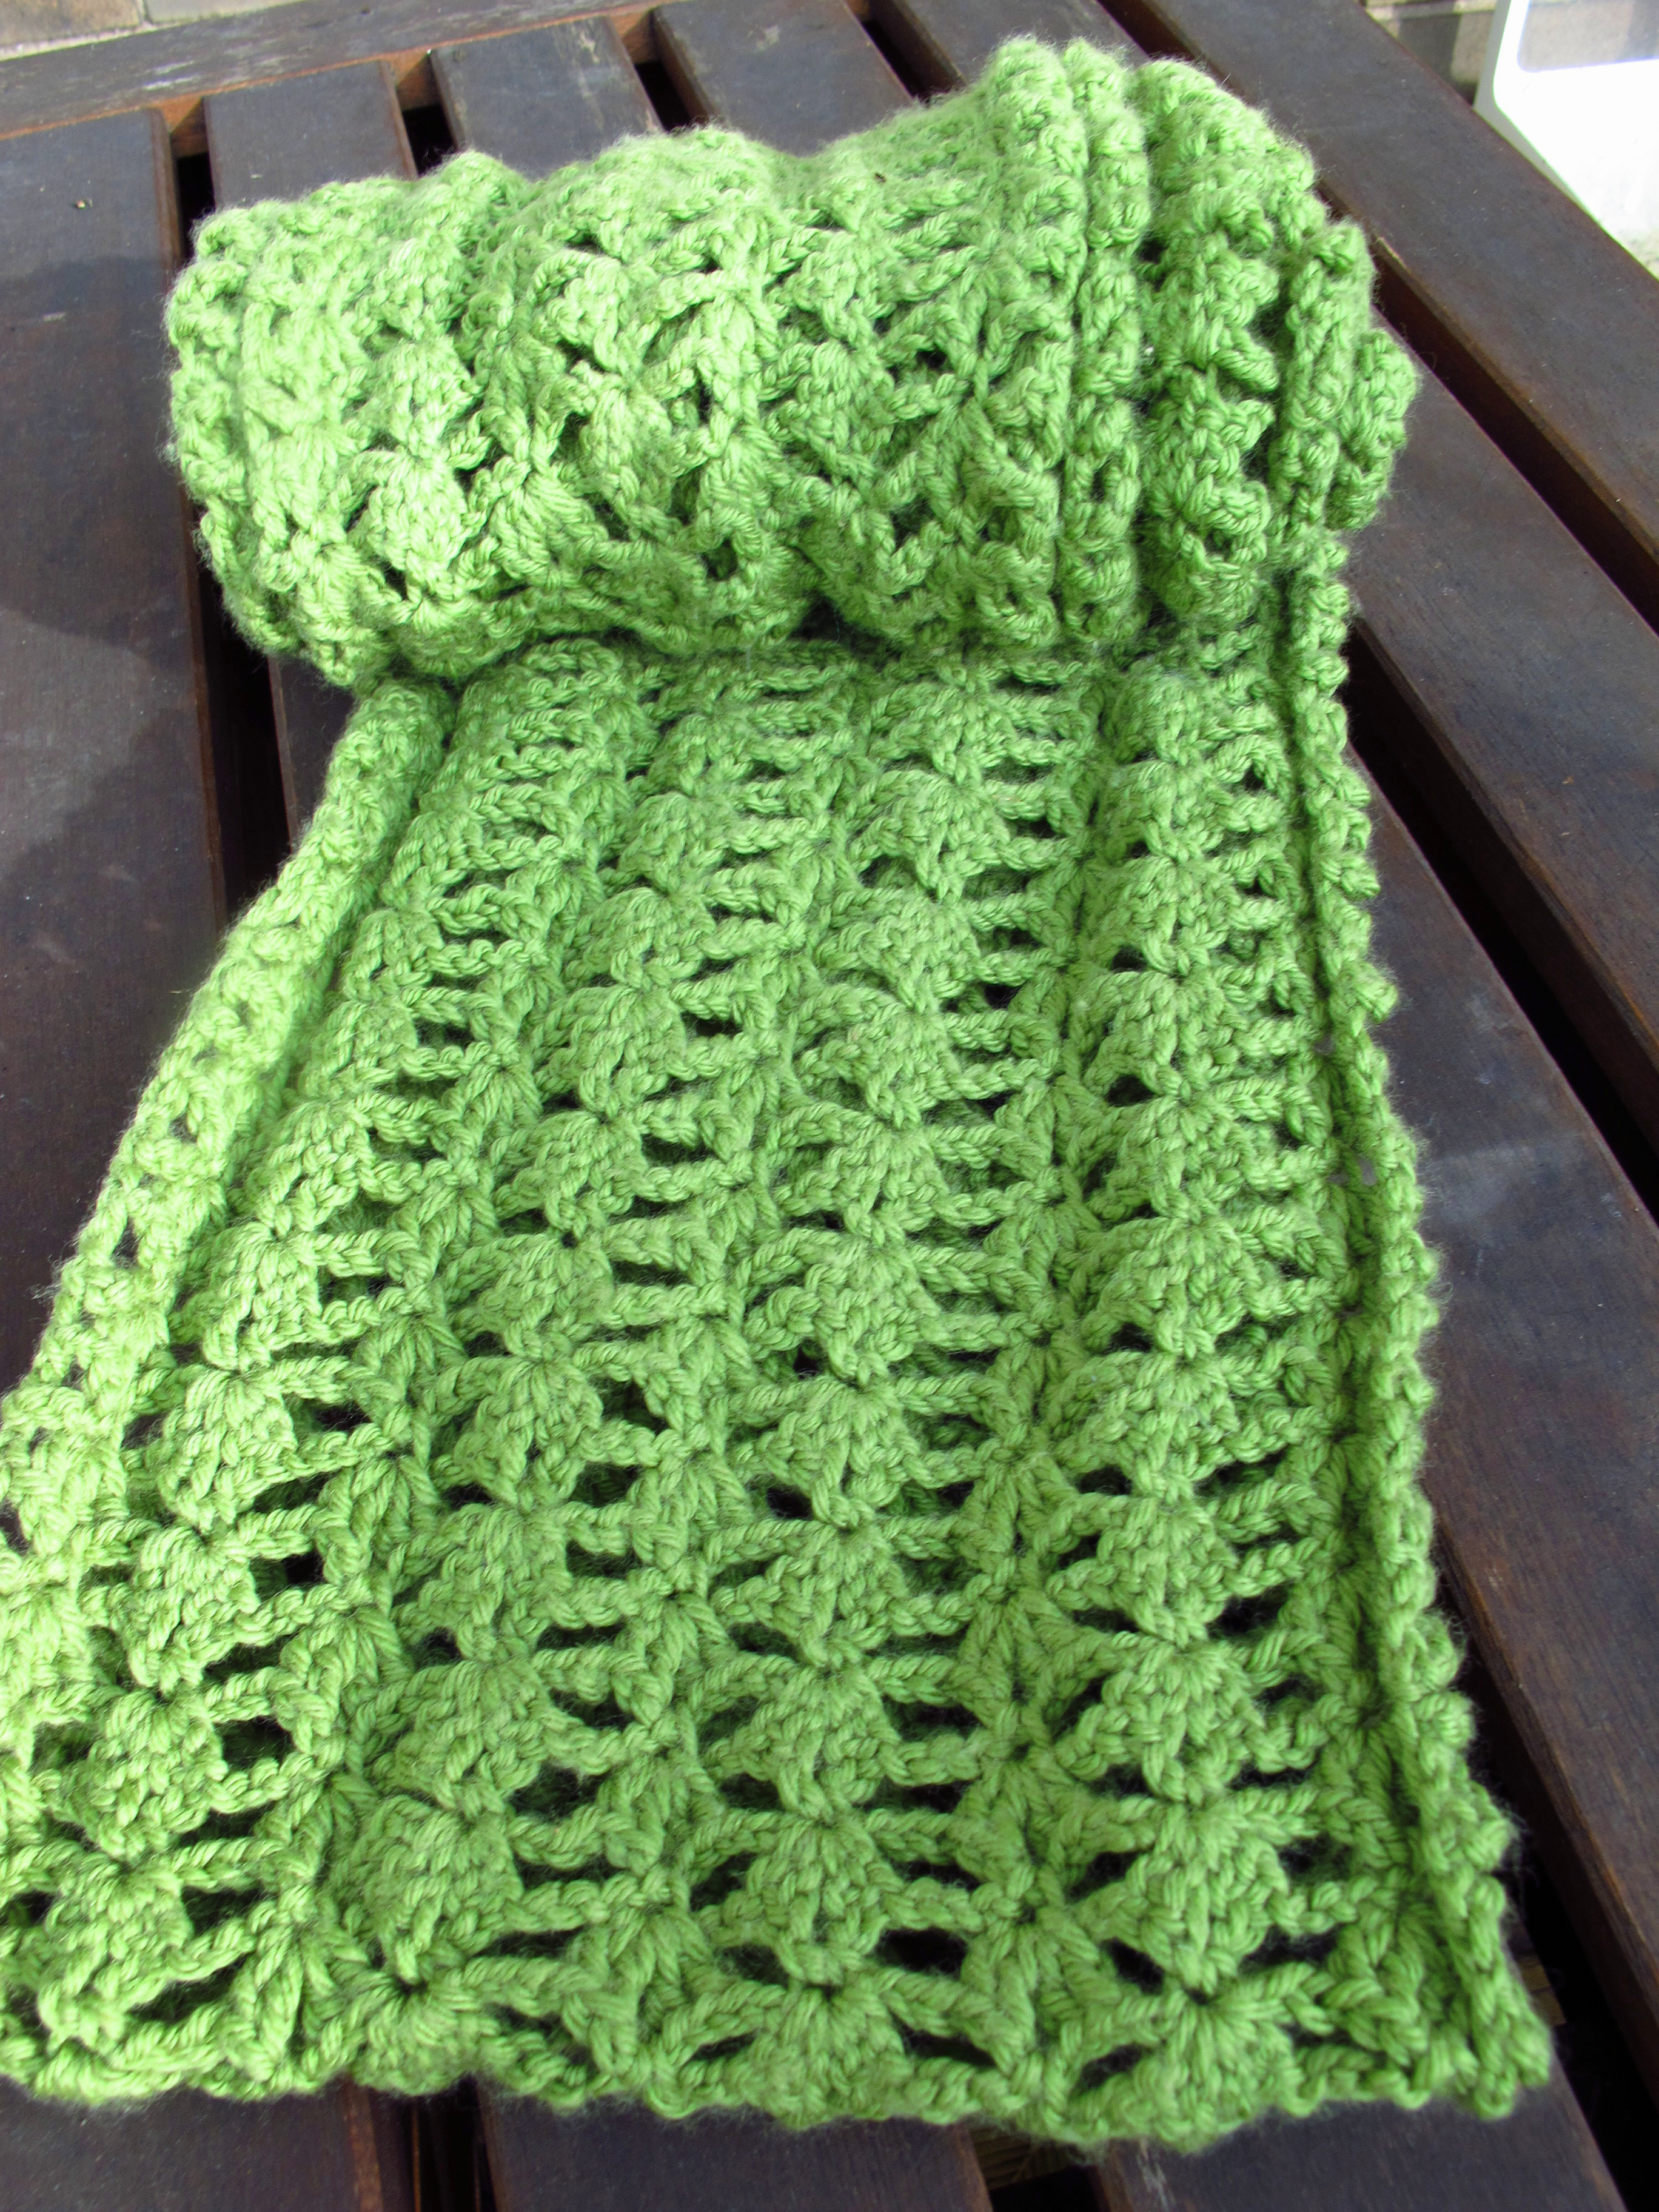 Crochet Scarfs Awesome Diy Crocheted Lacy Green Infinity Scarf Pattern Of Brilliant 40 Pics Crochet Scarfs